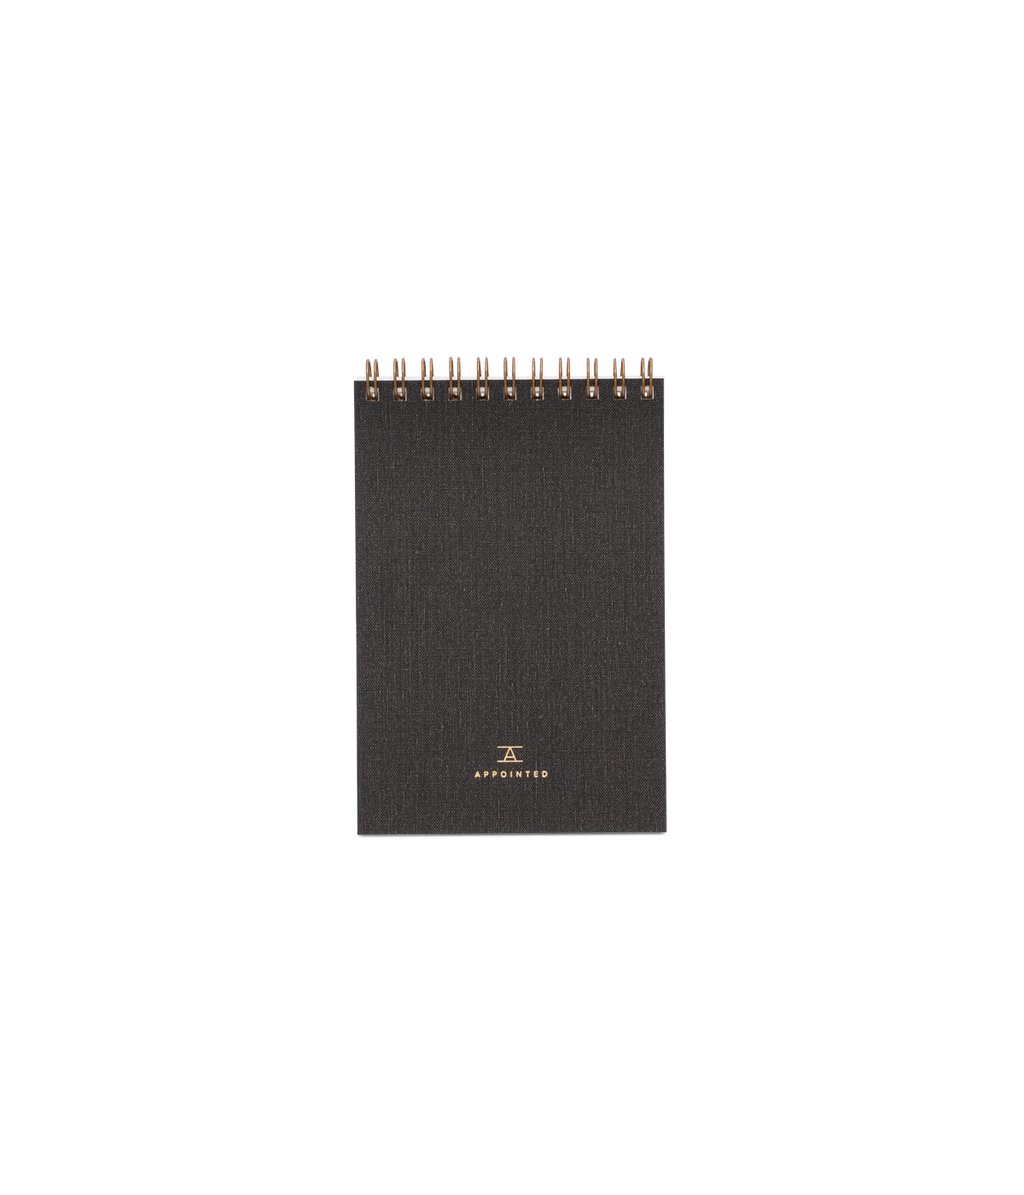 Appointed Pocket Notepad in Charcoal Grey